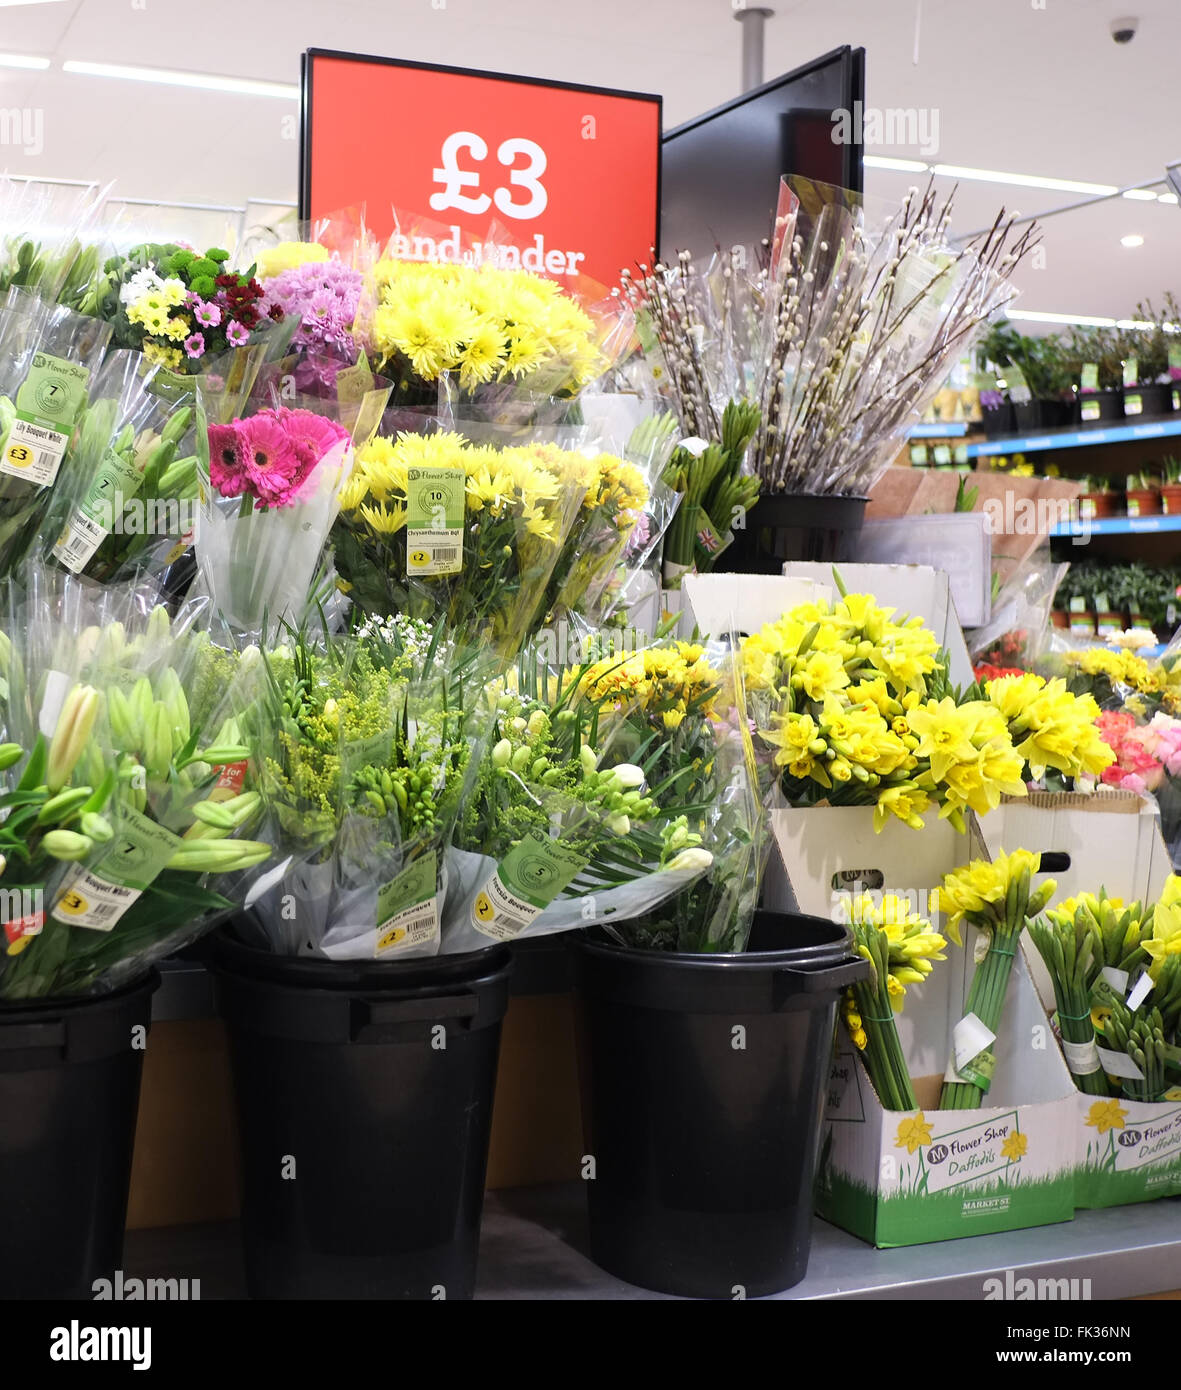 Display Of Cheap Flowers In A Morrisons Supermarket In Britain 18th